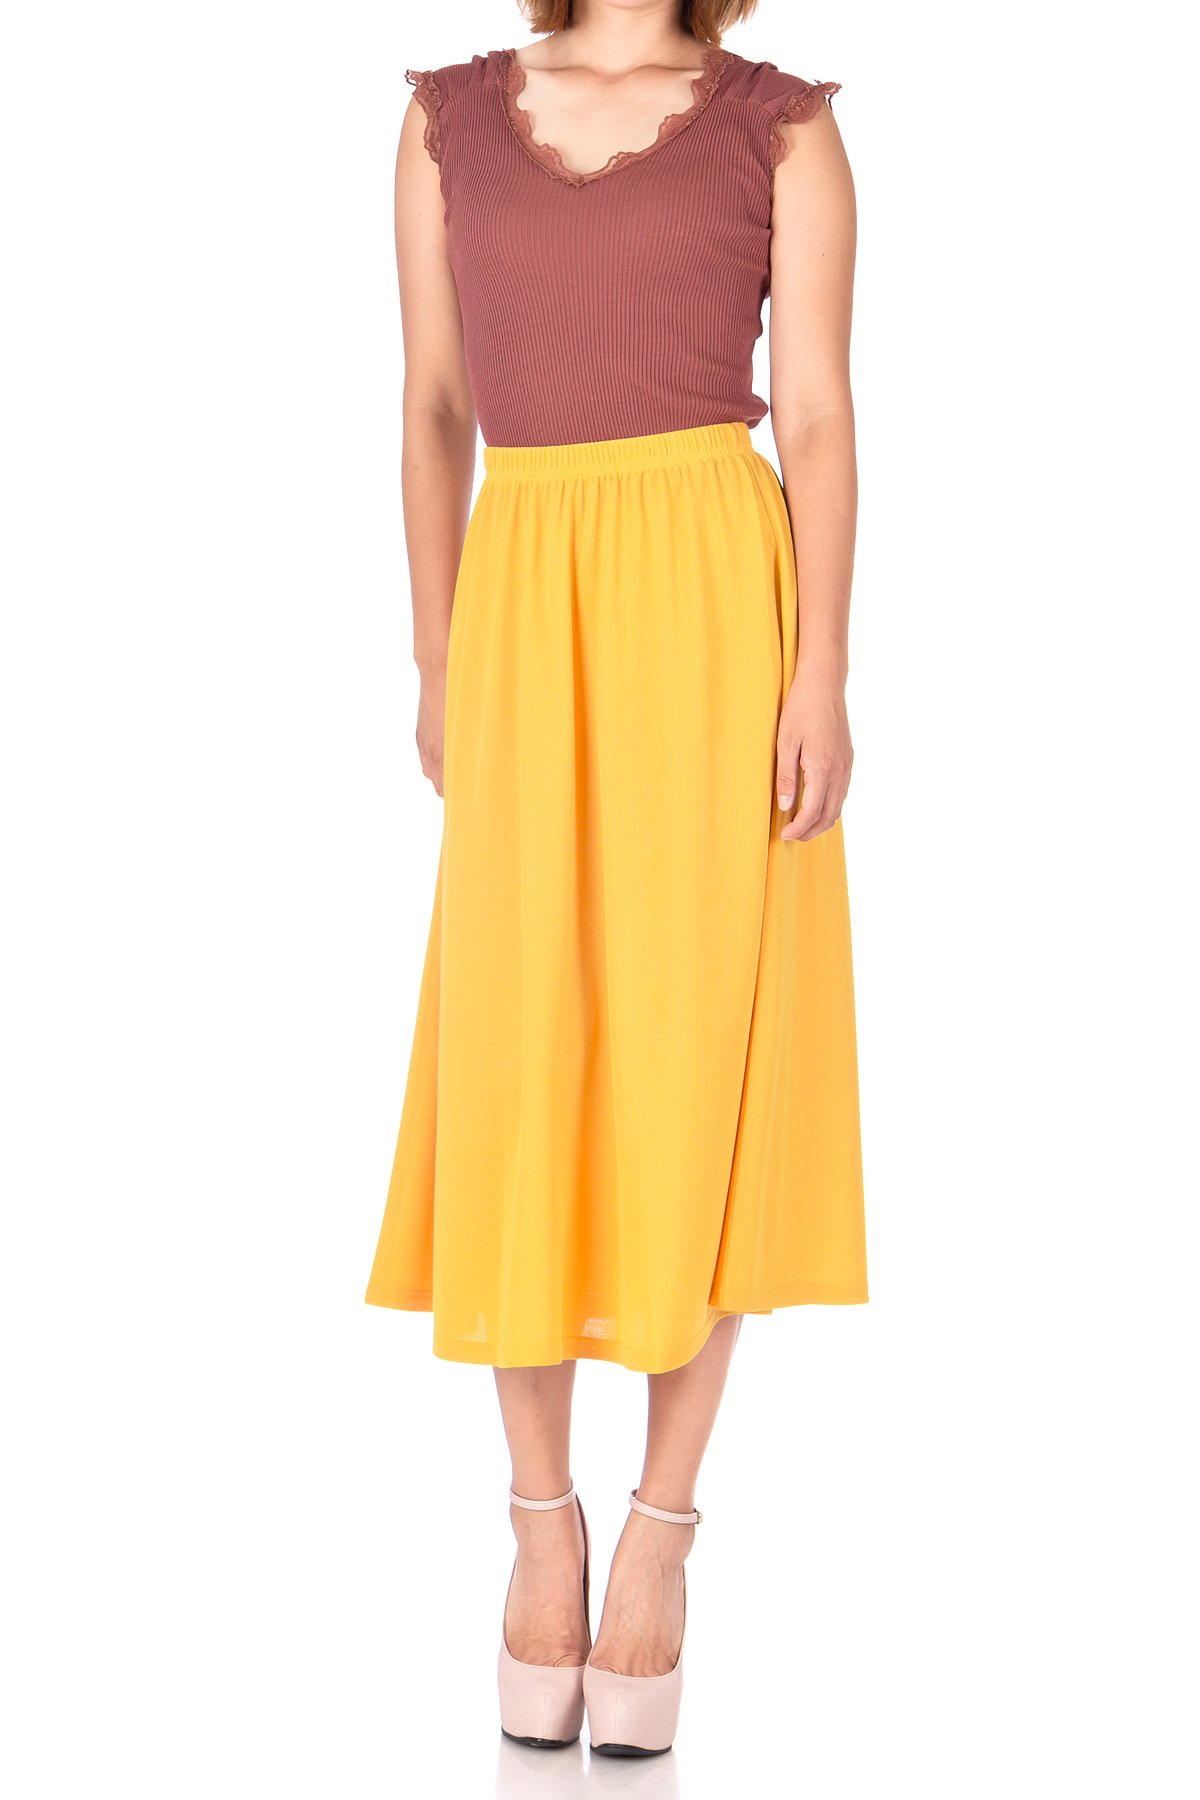 Brilliant Elastic Waist Full Flared Long Skirt Yellow 01